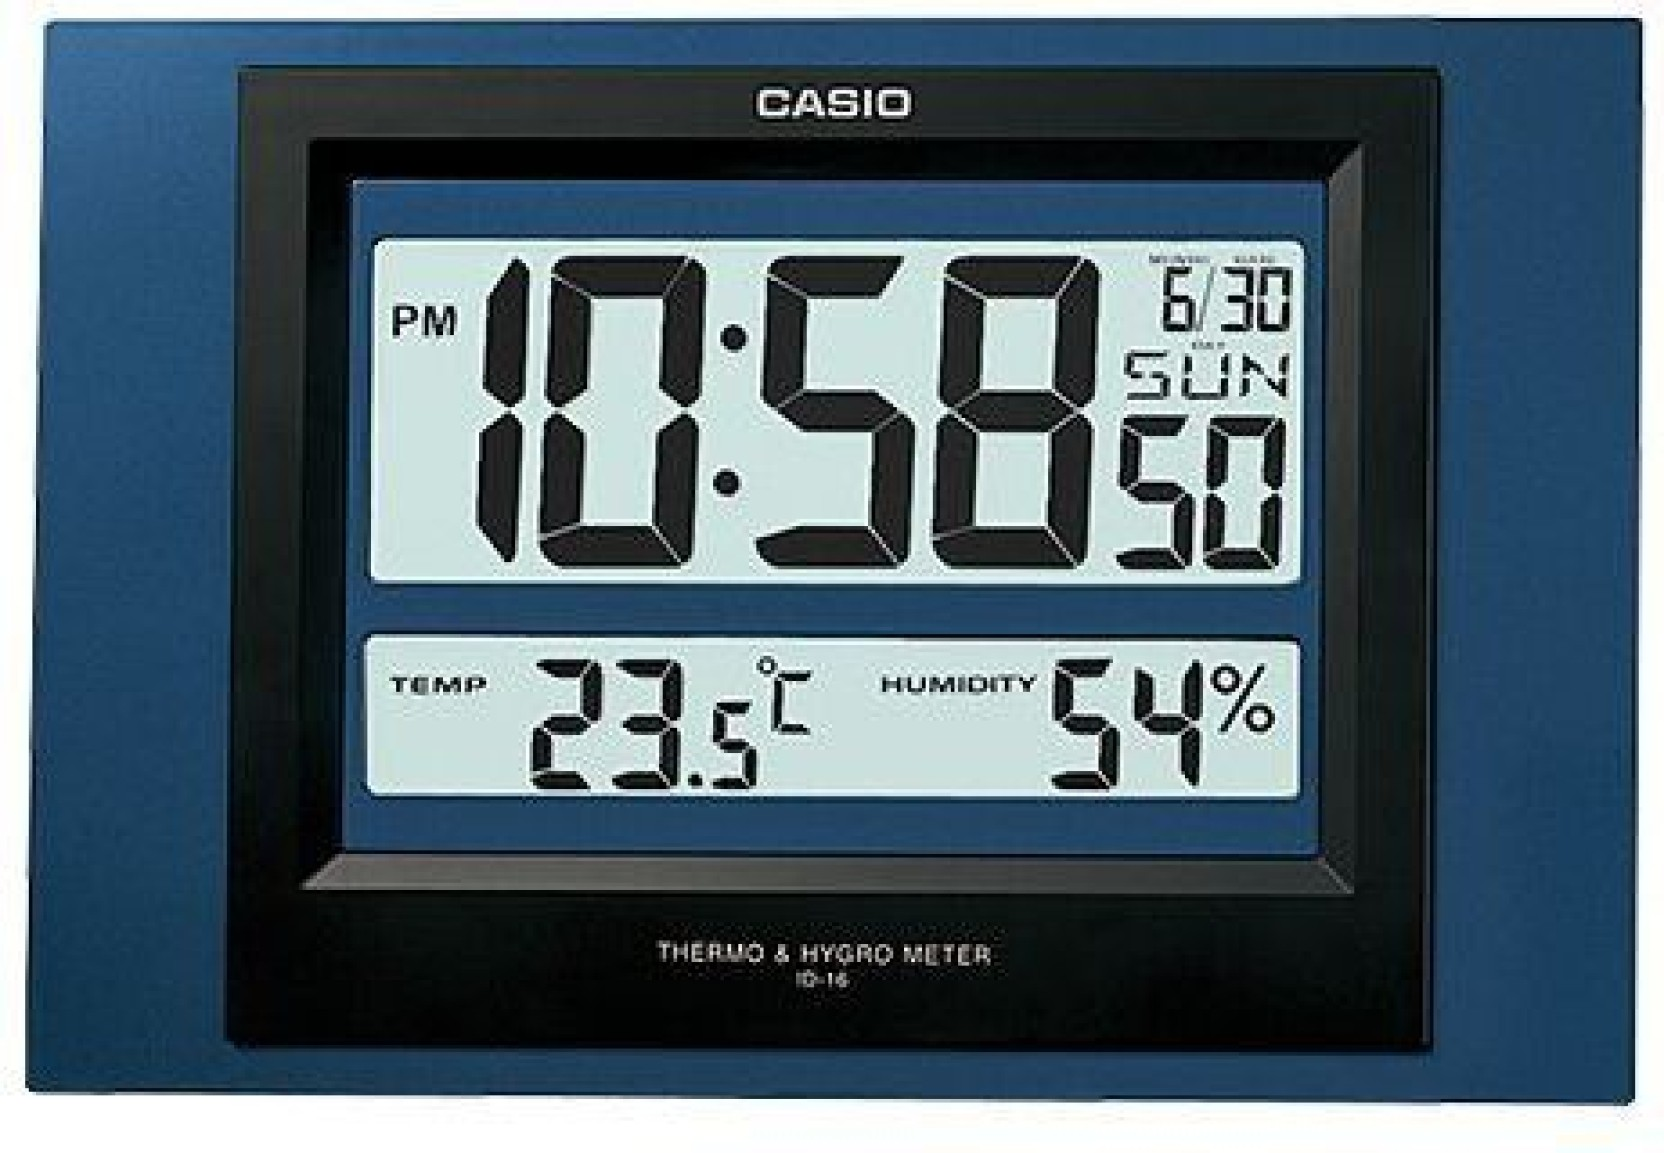 Casio digital wall clock images home wall decoration ideas casio digital wall clock price in india buy casio digital wall casio digital wall clock add amipublicfo Choice Image